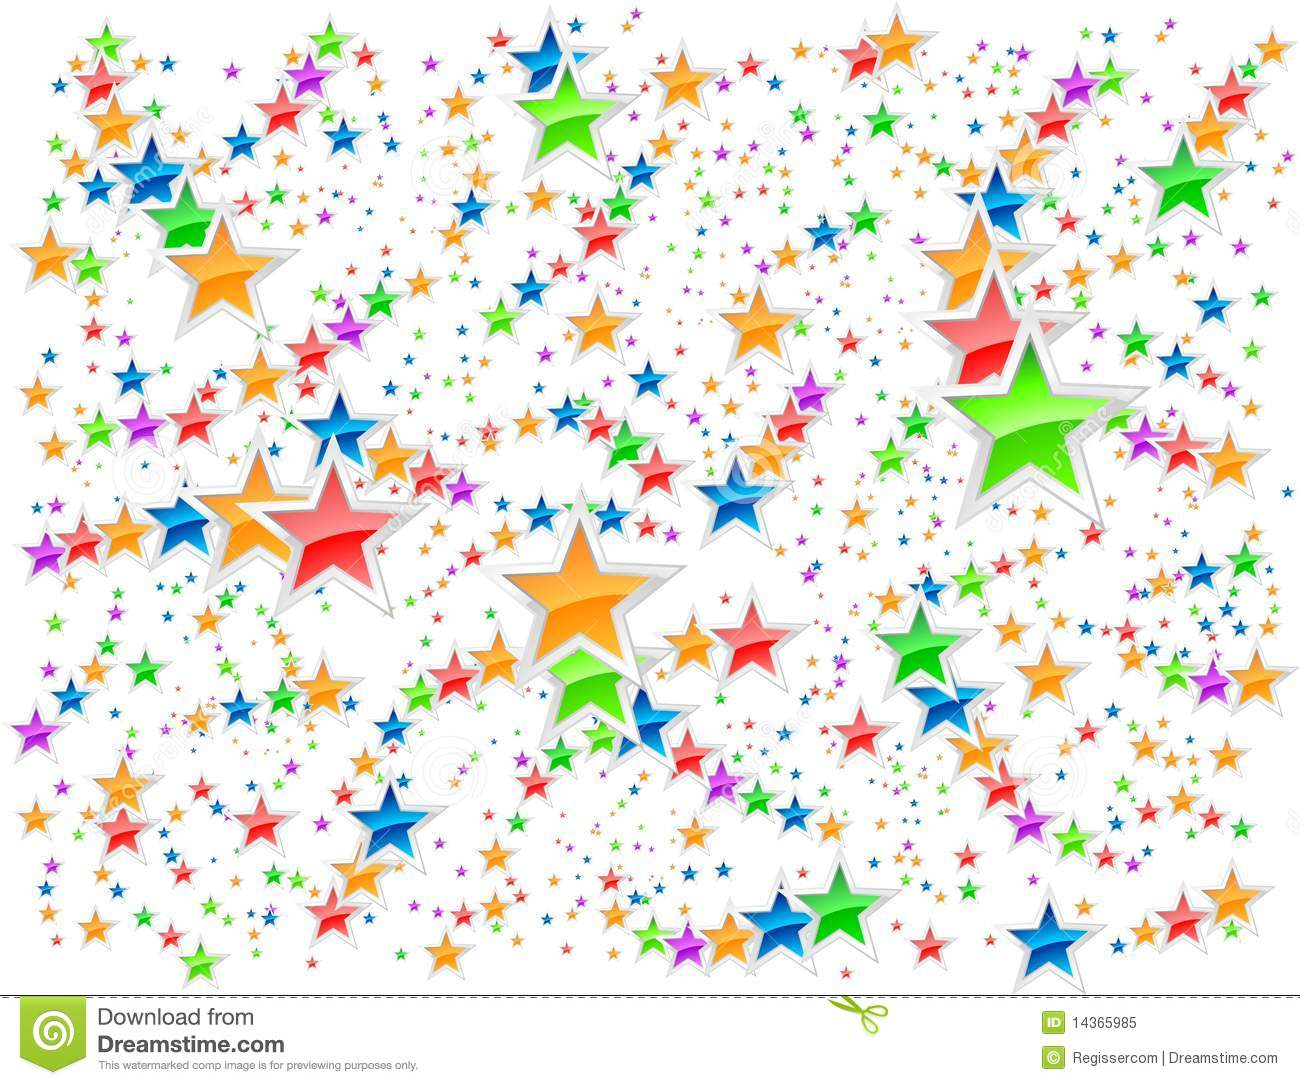 Stars background stock vector. Image of decoration, light ...